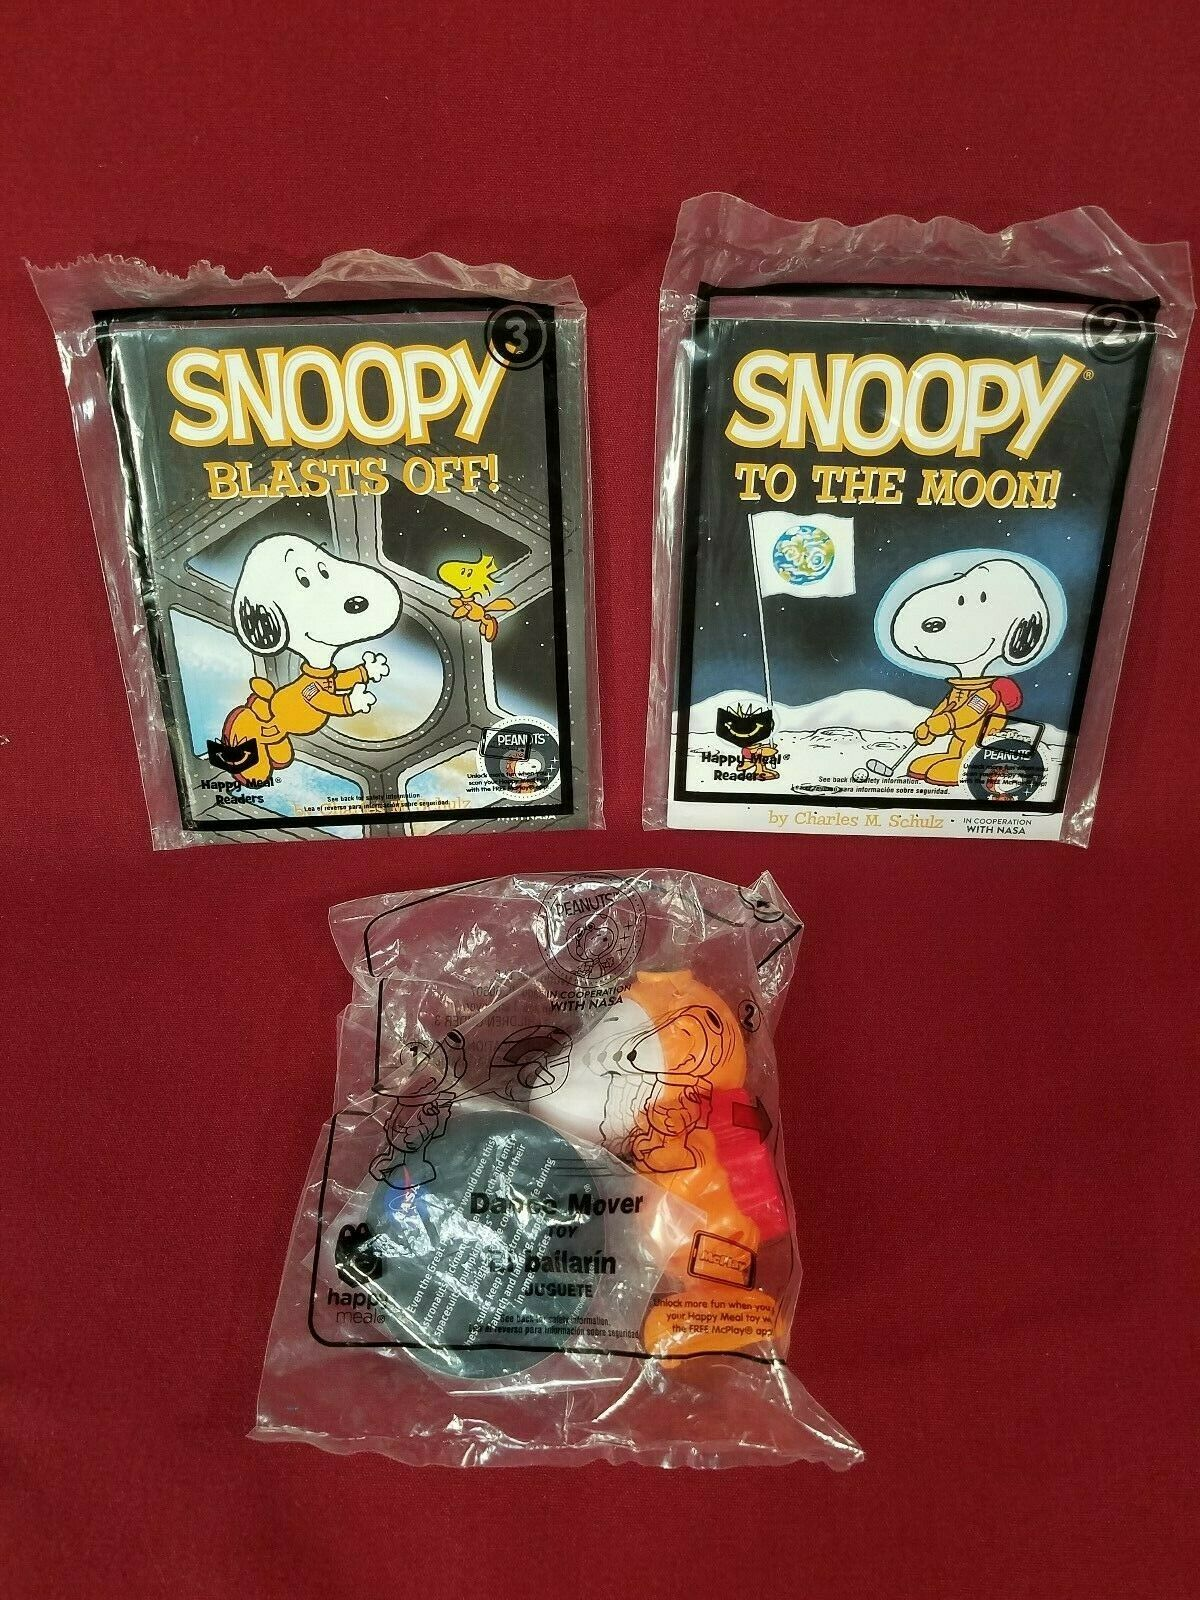 Book New 2019 McDonald/'s Happy Meal Toy #2 New Snoopy Nasa Snoopy To The Moon